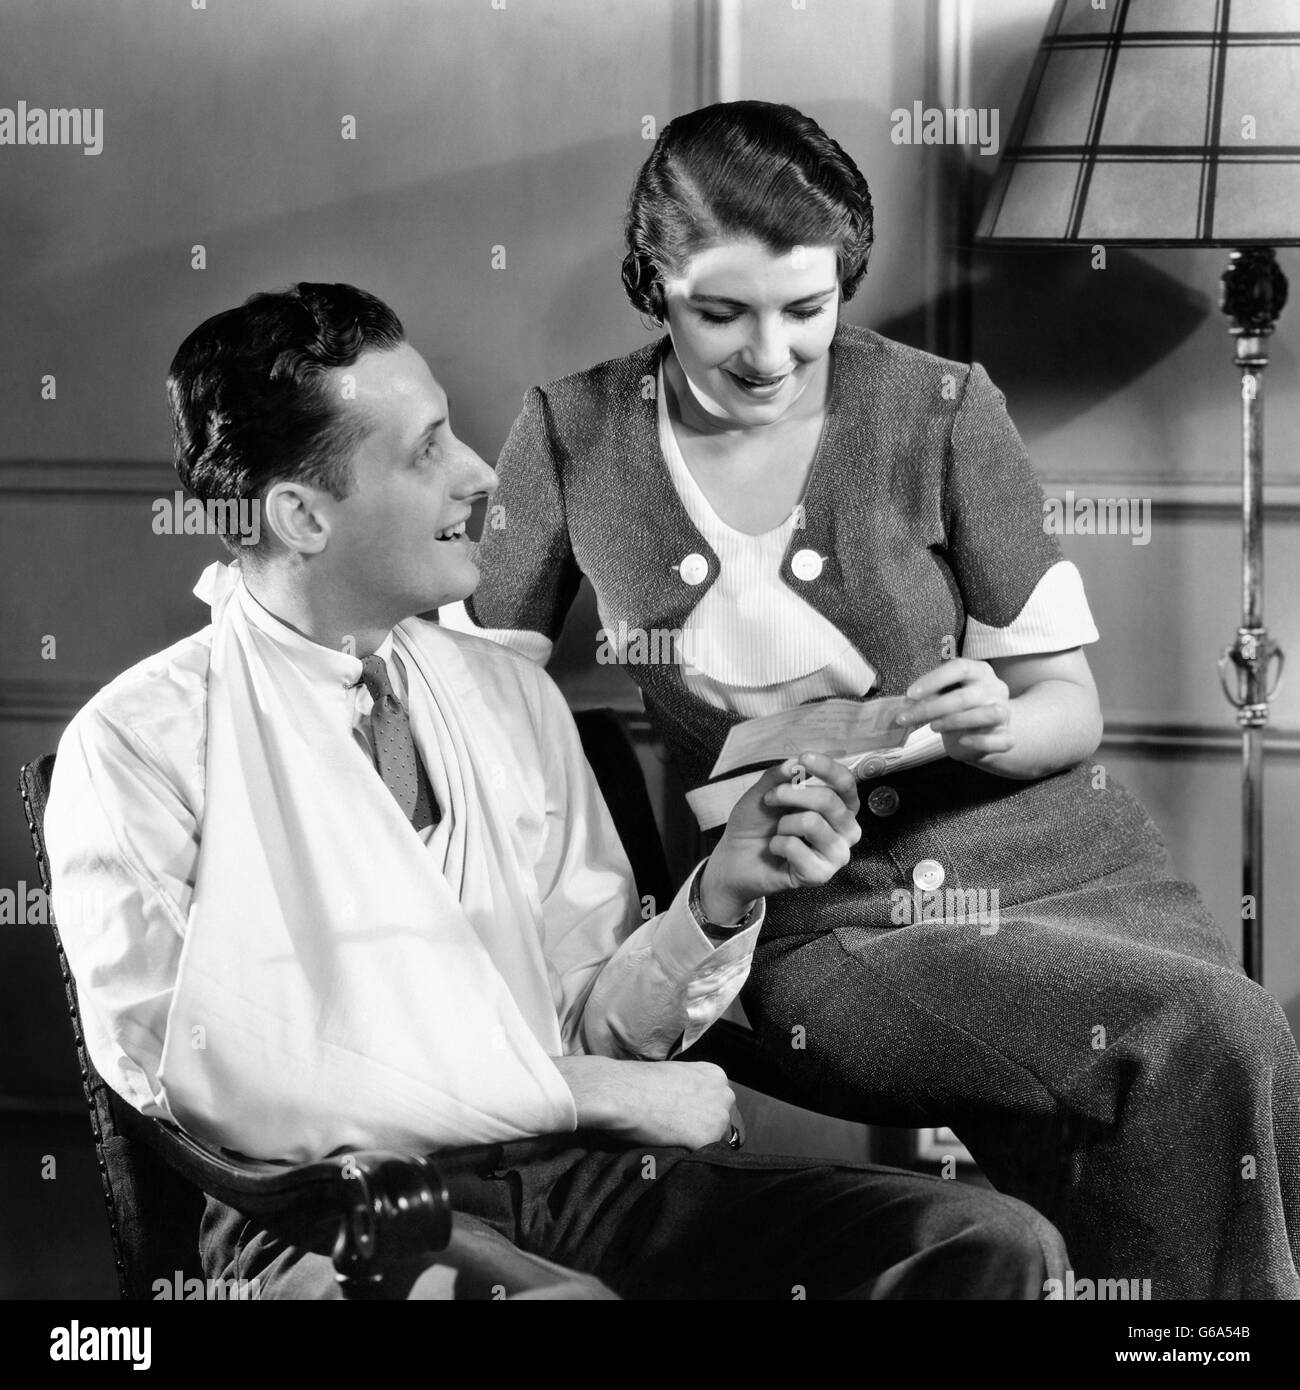 1930s COUPLE WOMAN HOLDING INSURANCE CHECK MAN WITH INJURED ARM IN SLING - Stock Image